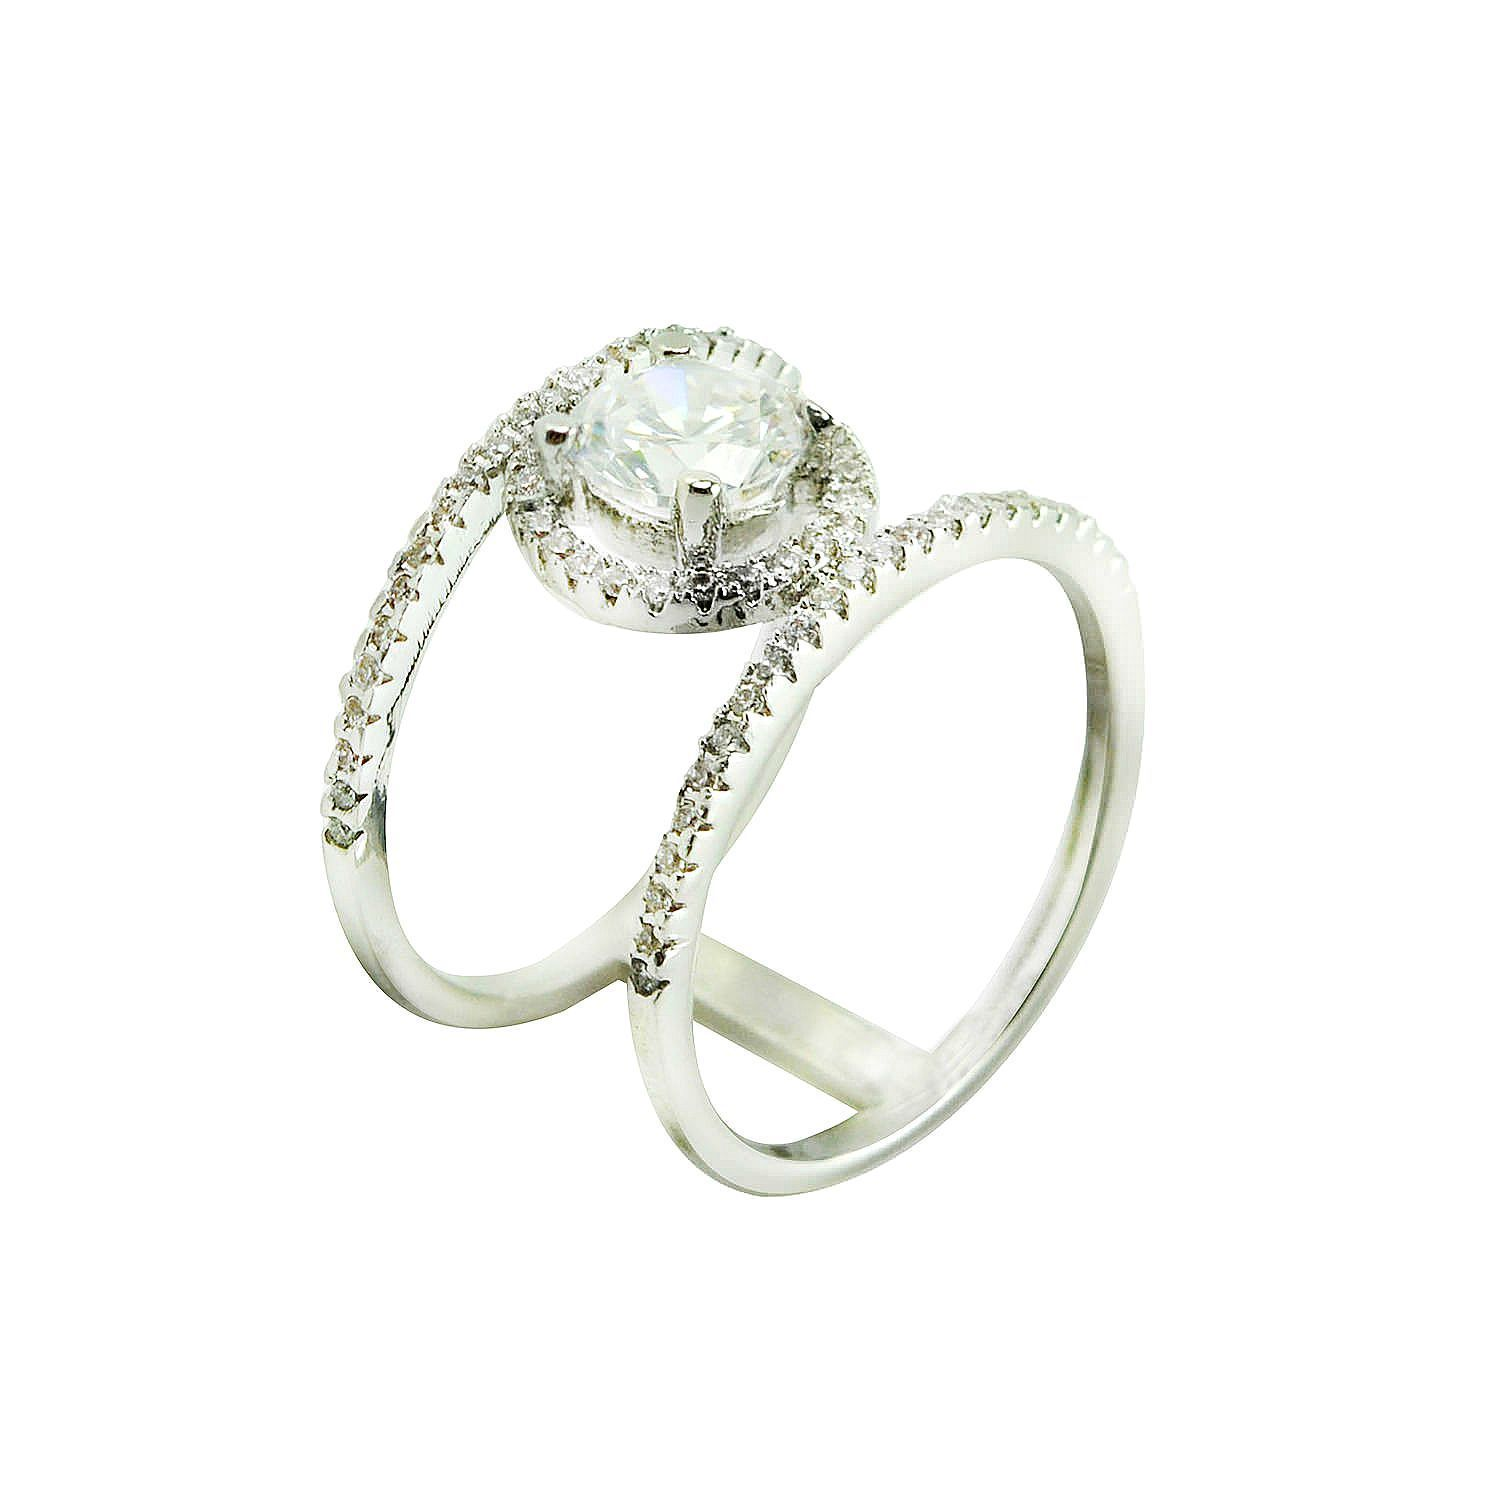 Pave Clear AAA Cubic Zirconia Oval Halo Open X Ring-Rhodium Plated